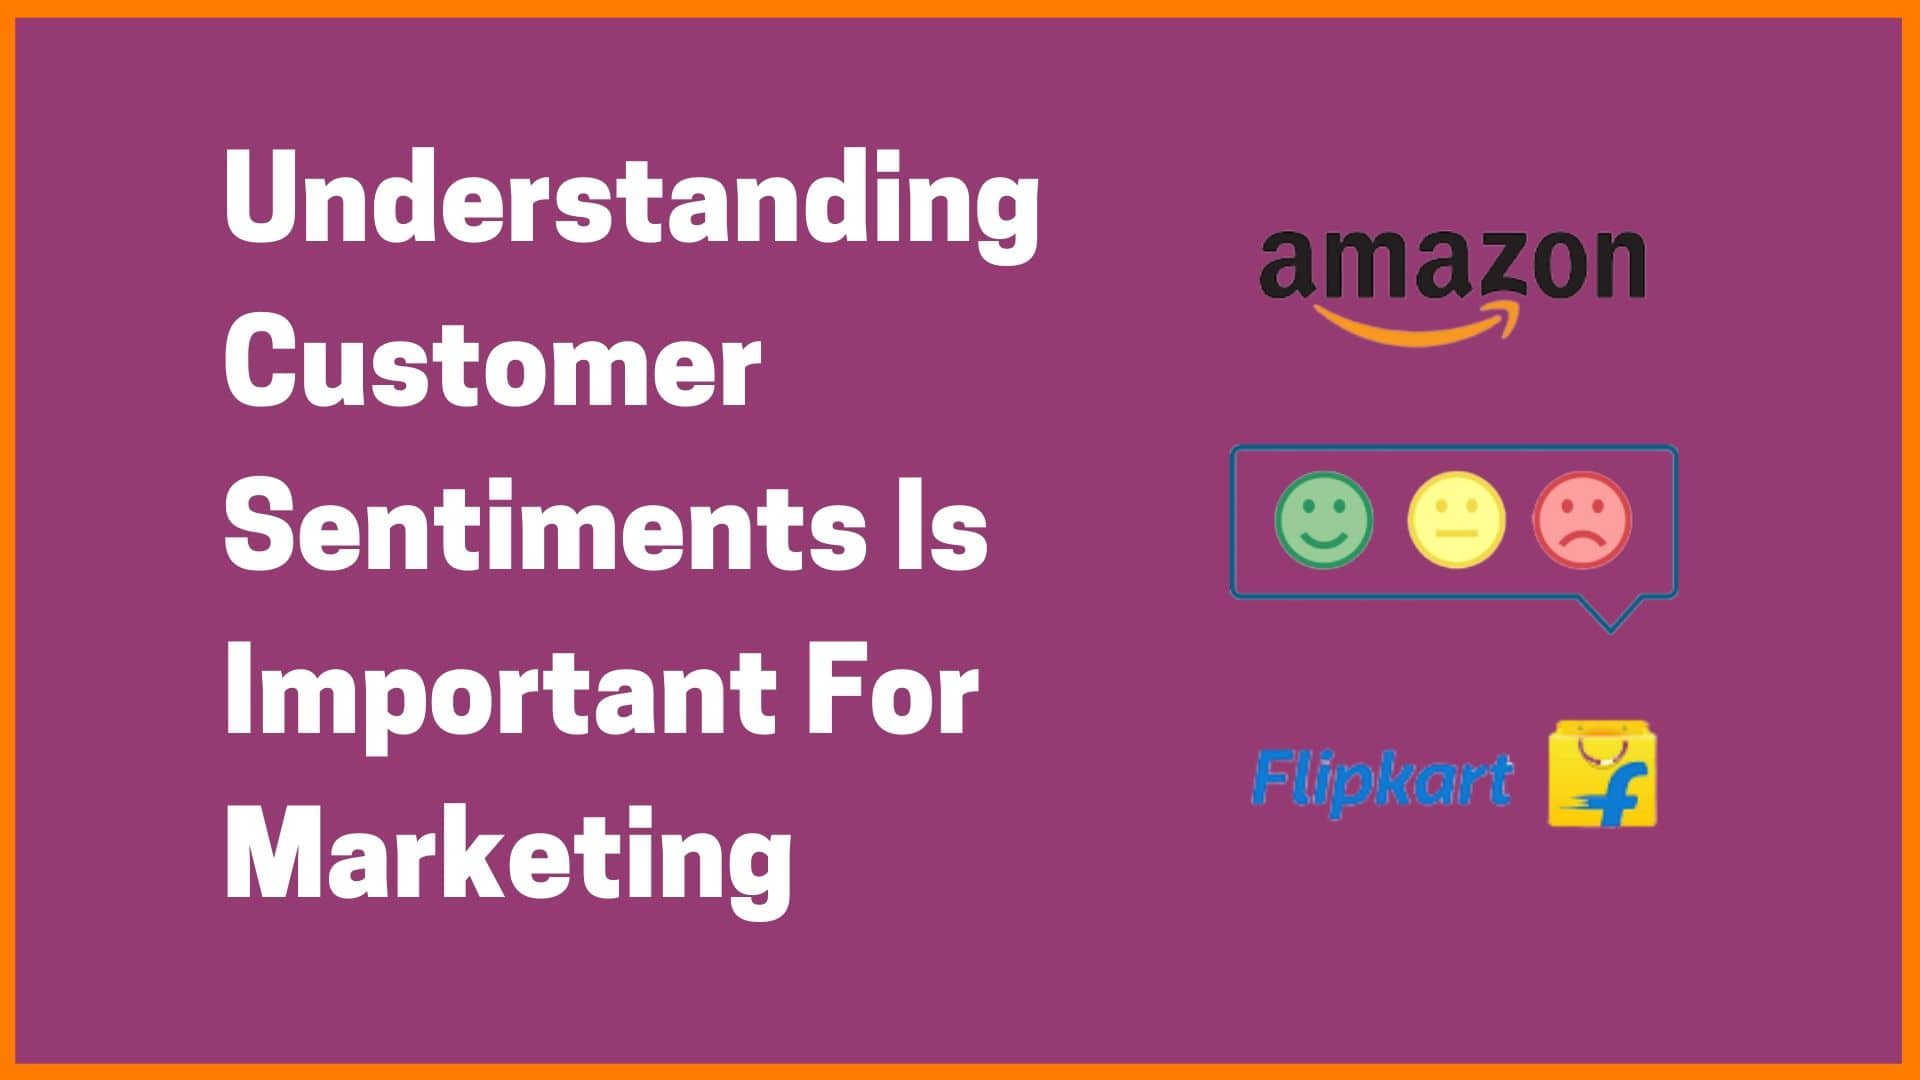 Understanding Customer Sentiments Is Important For Marketing